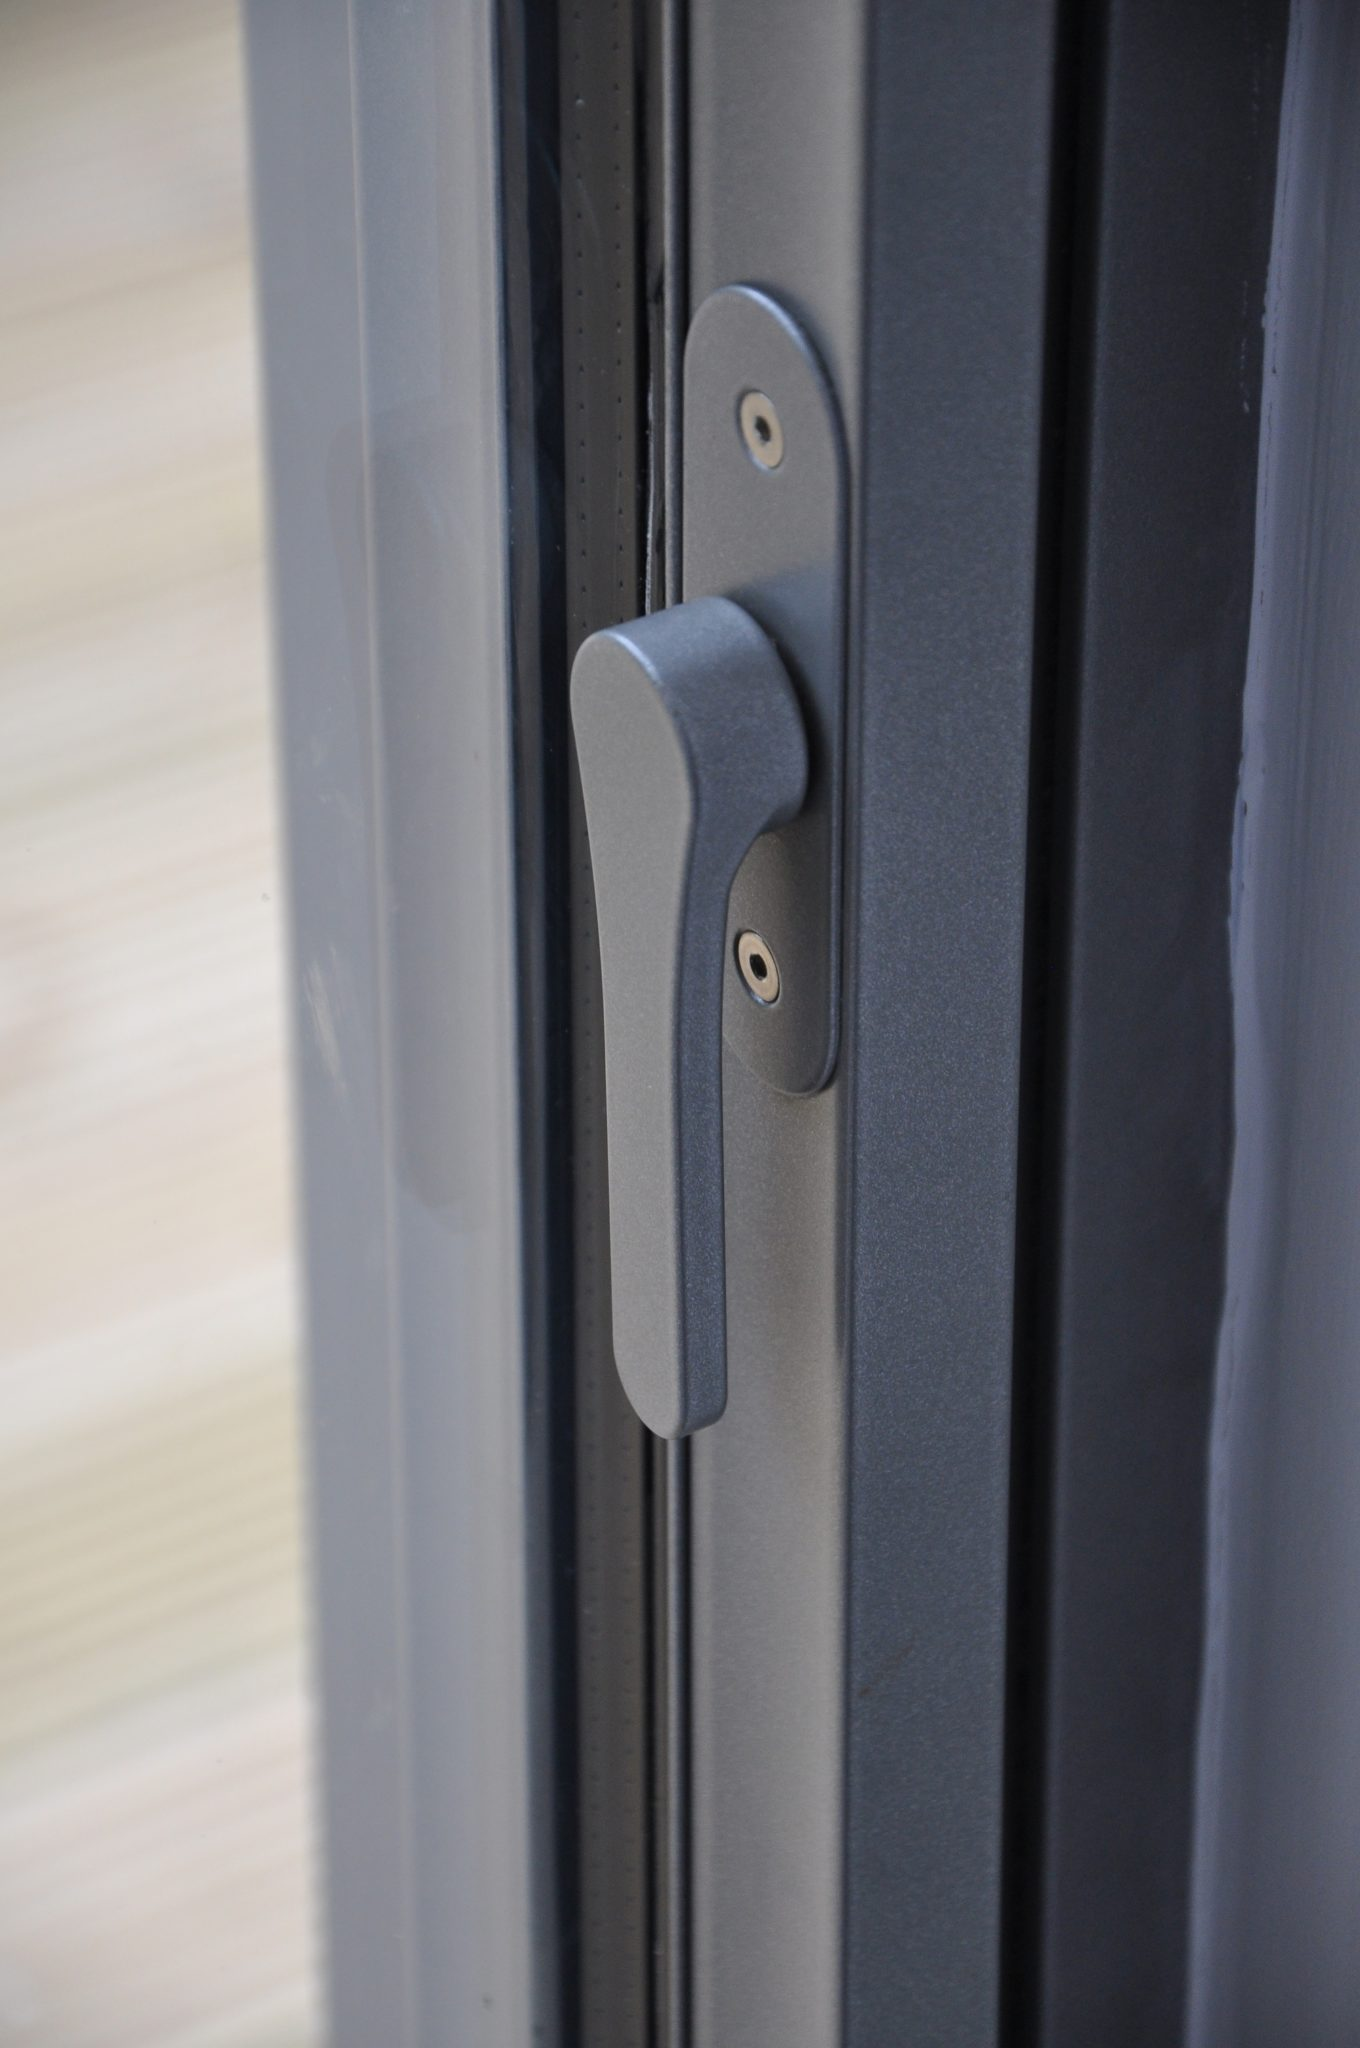 Neat contemporary locking mechanism for the minimal windows system